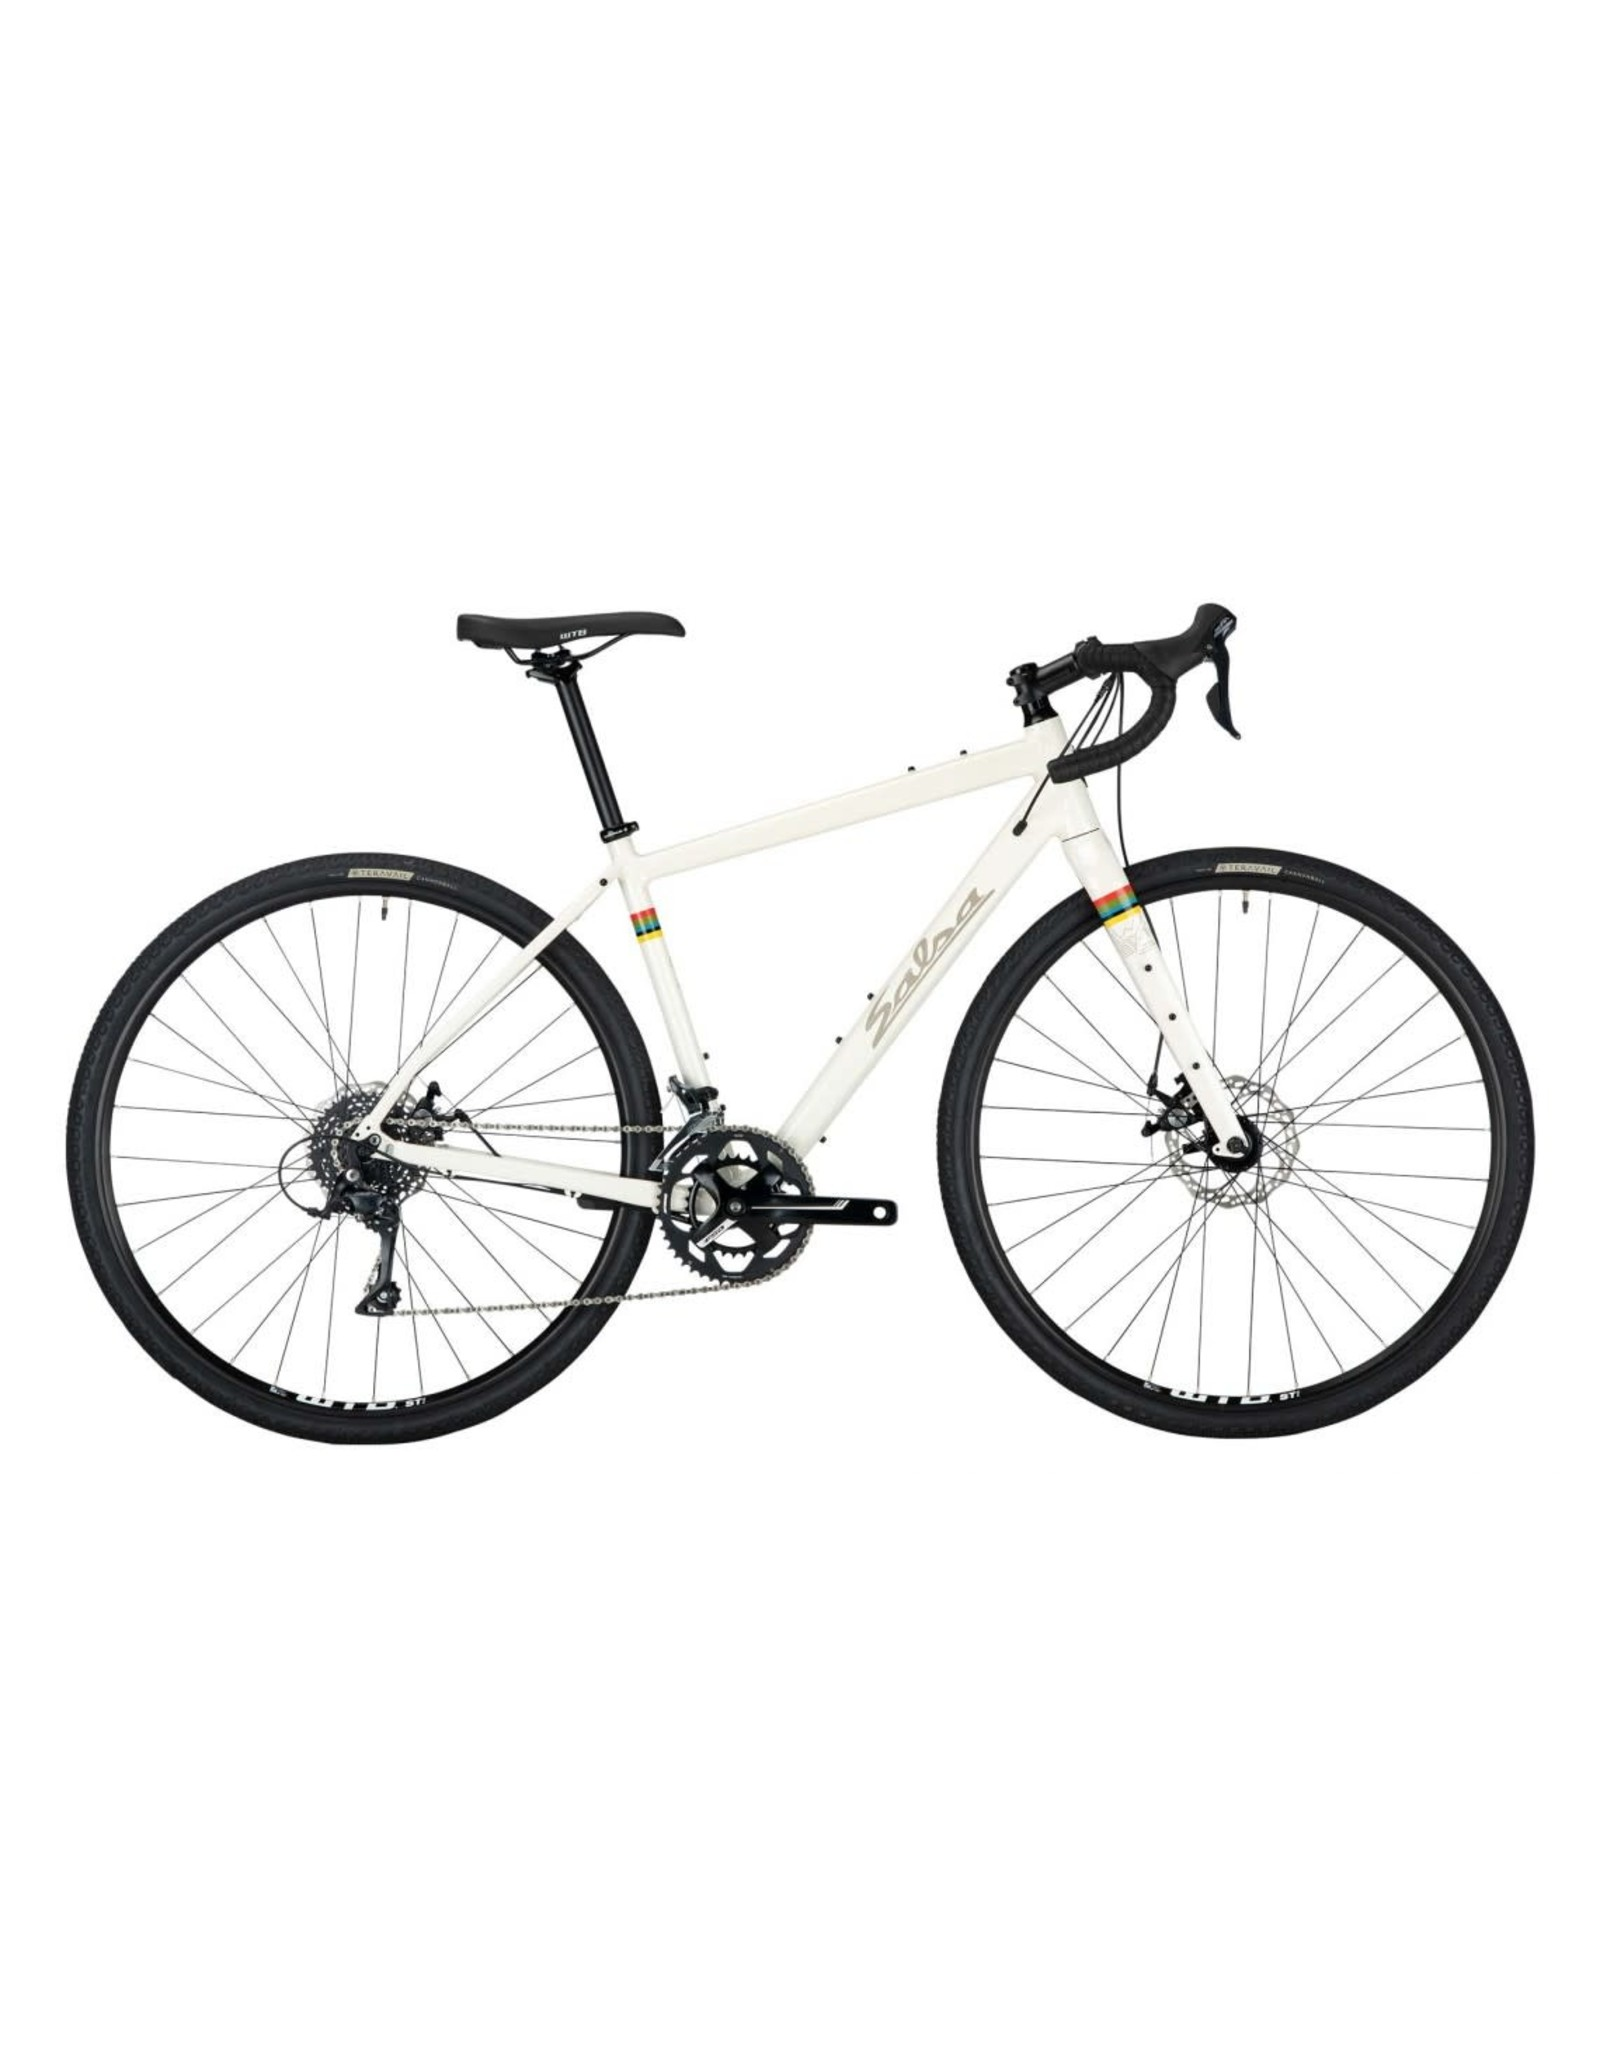 Salsa Salsa Journeyman Sora 700 - Cream - 59.5cm